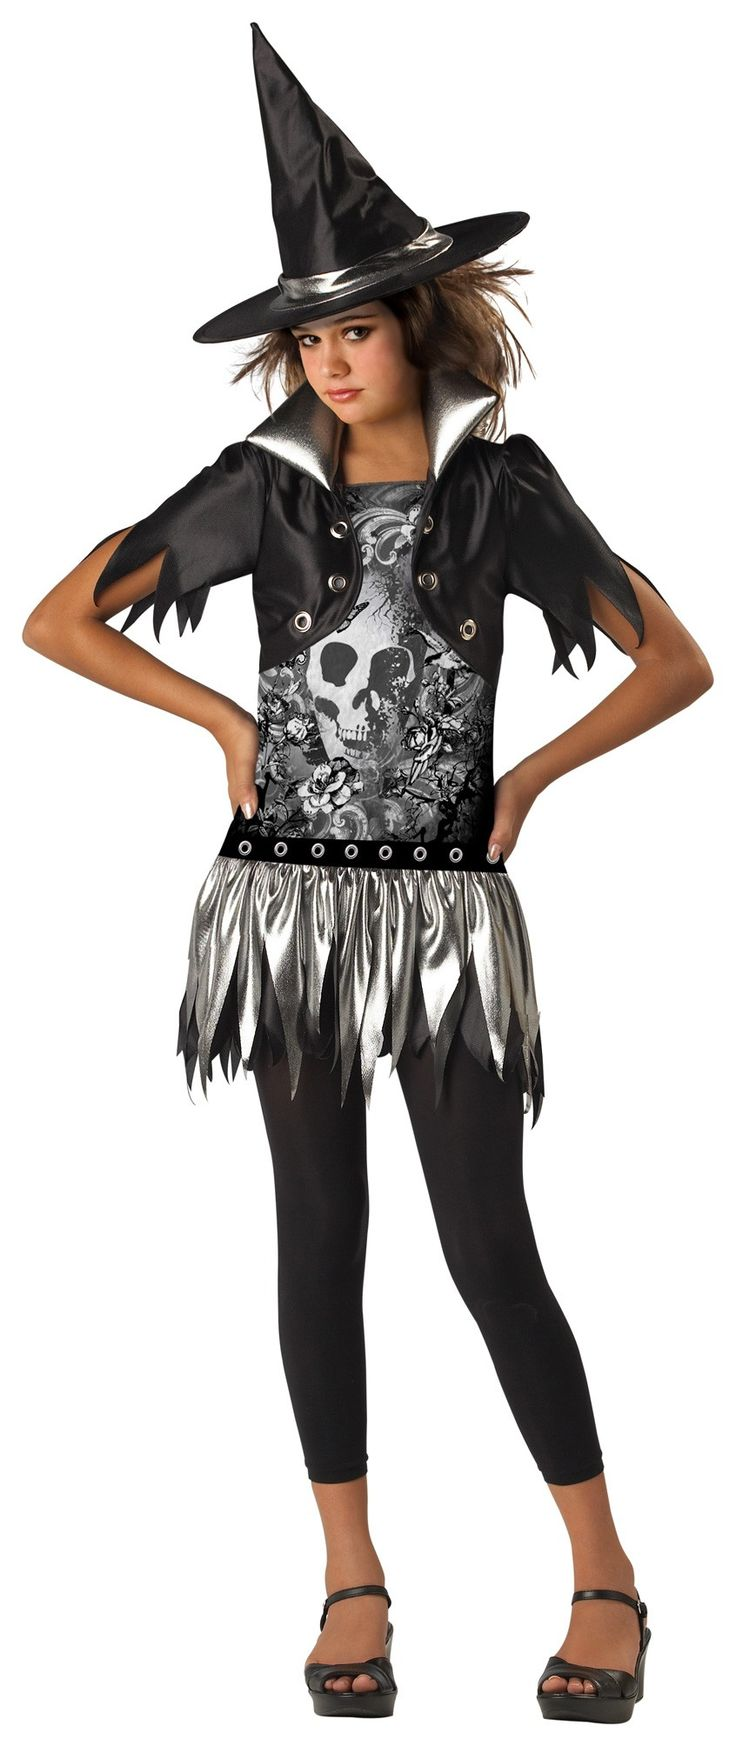 The 53 best images about Witch Halloween Costumes on Pinterest ...